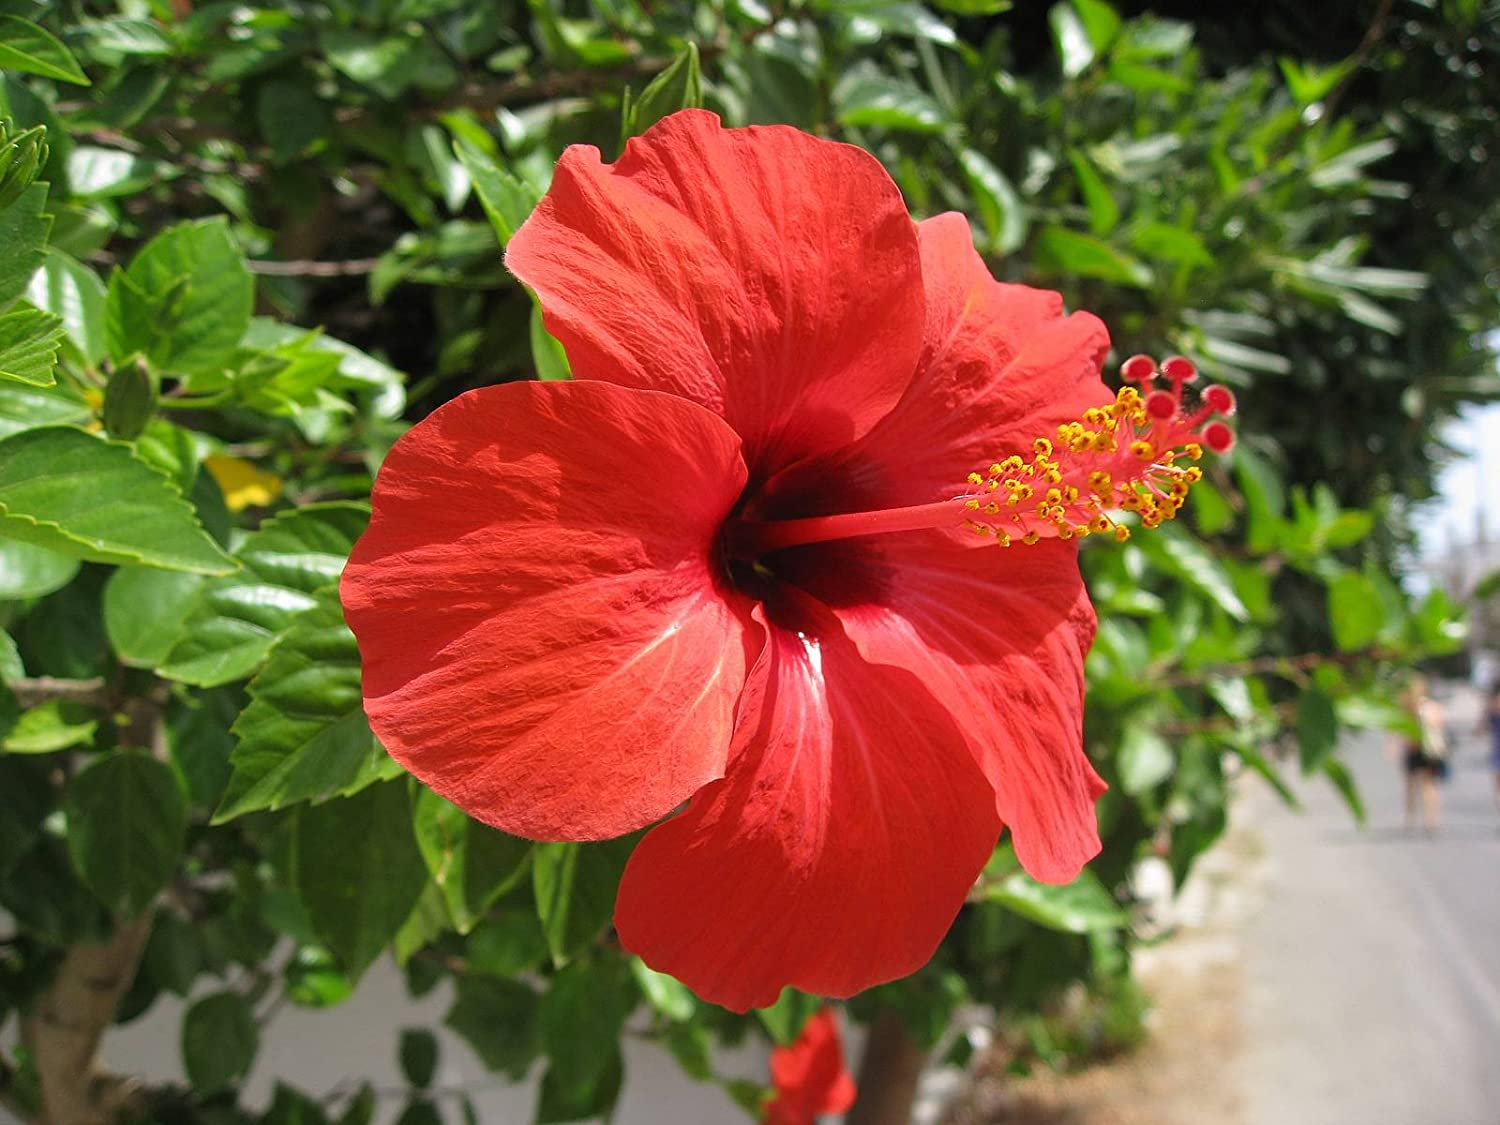 Live red hibiscus plant red hibiscus flower plant amazon garden live red hibiscus plant red hibiscus flower plant amazon garden outdoors izmirmasajfo